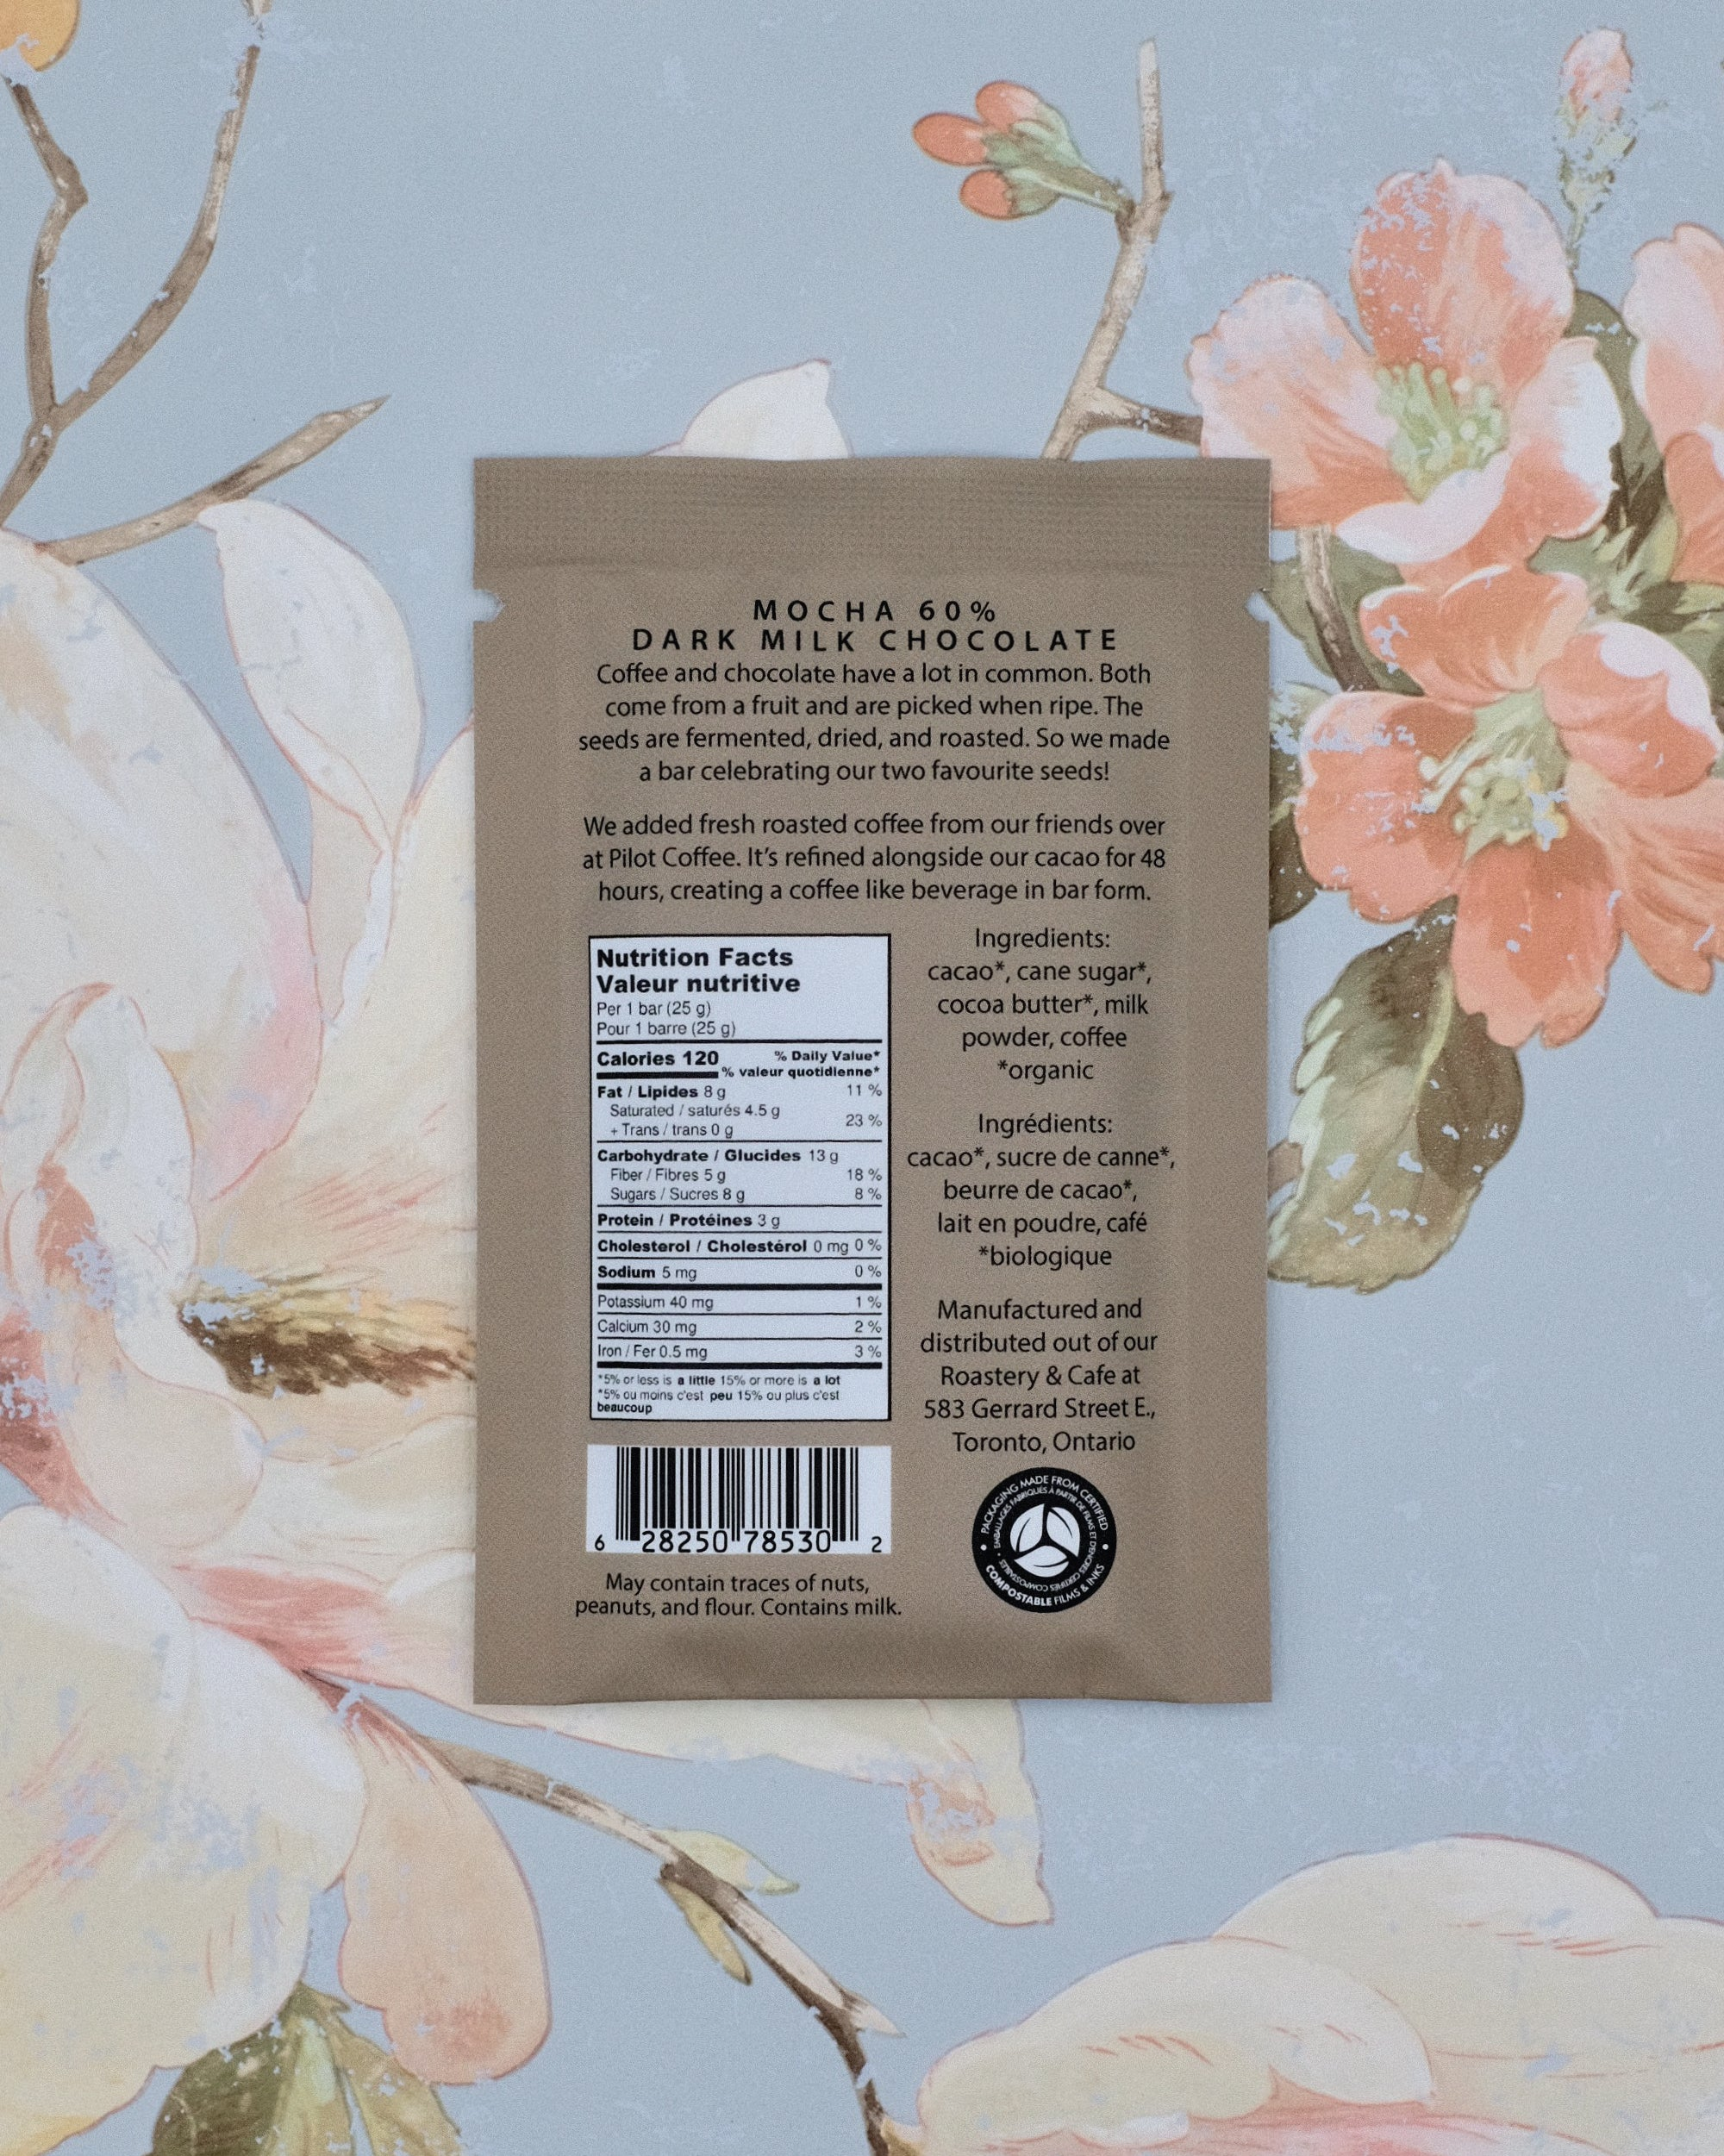 The back of our Mocha 60% Dark Milk Chocolate bar gives a bit of information on why we work with Pilot Coffee, along with nutritional information and ingredients